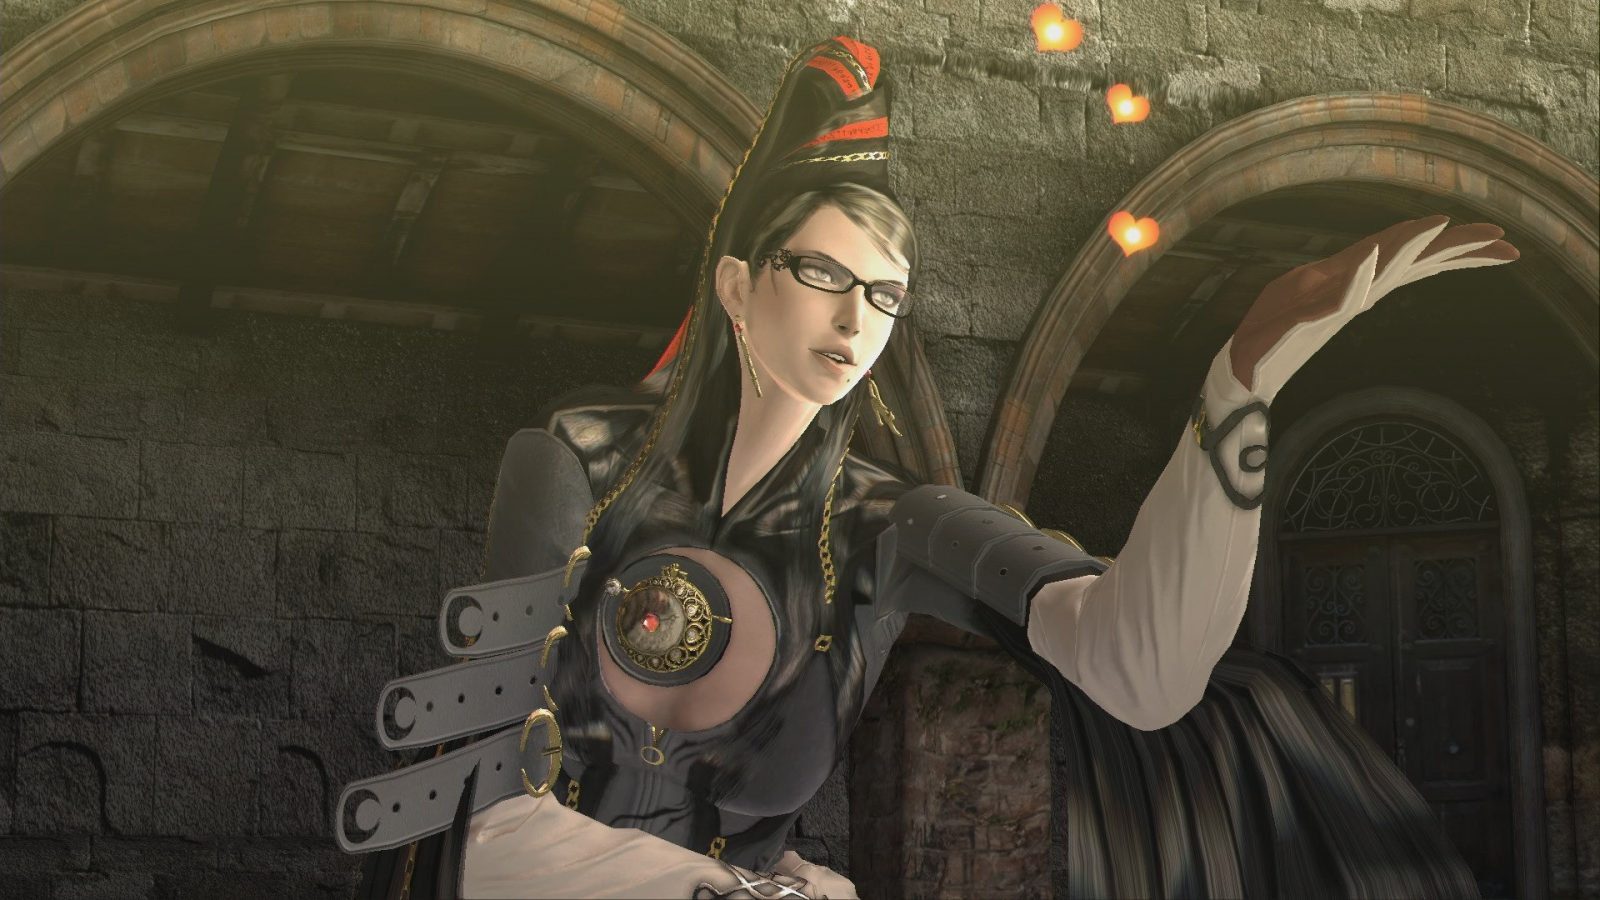 Bayonetta and Bayonetta 2 Being Delisted From European and Japanese Wii U eShop